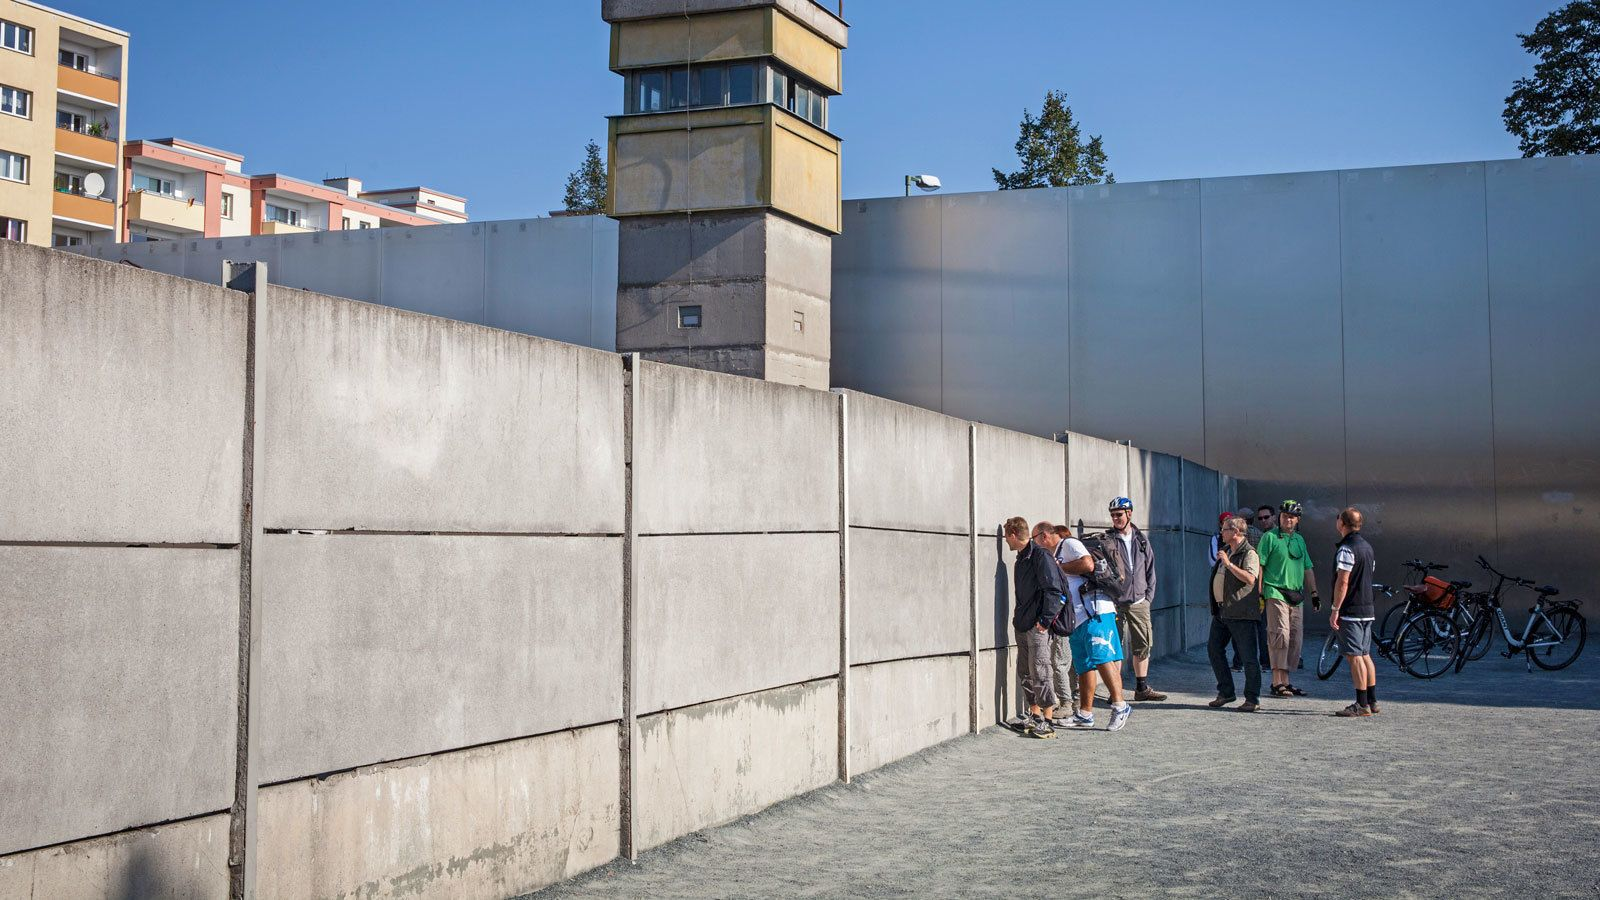 visit the former Berlin Wall in Germany